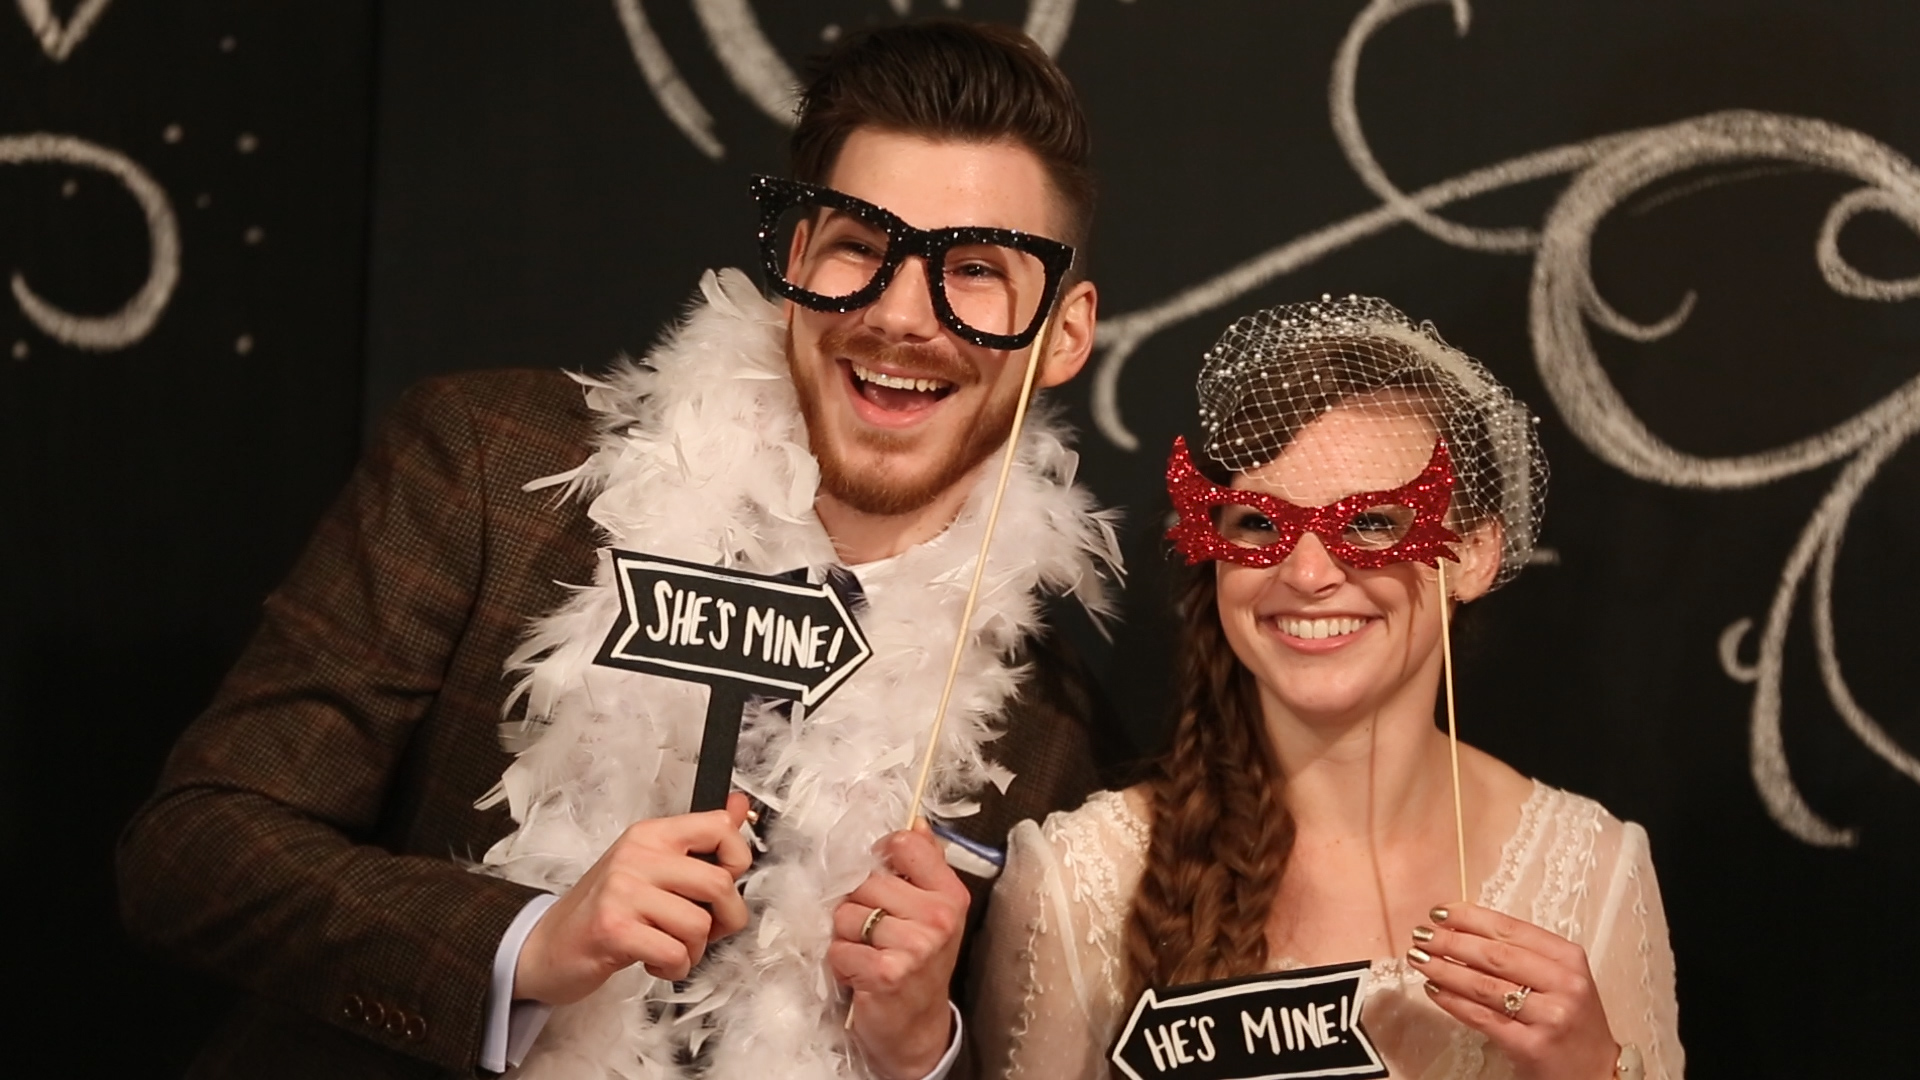 All the guests had a blast in the photobooth!